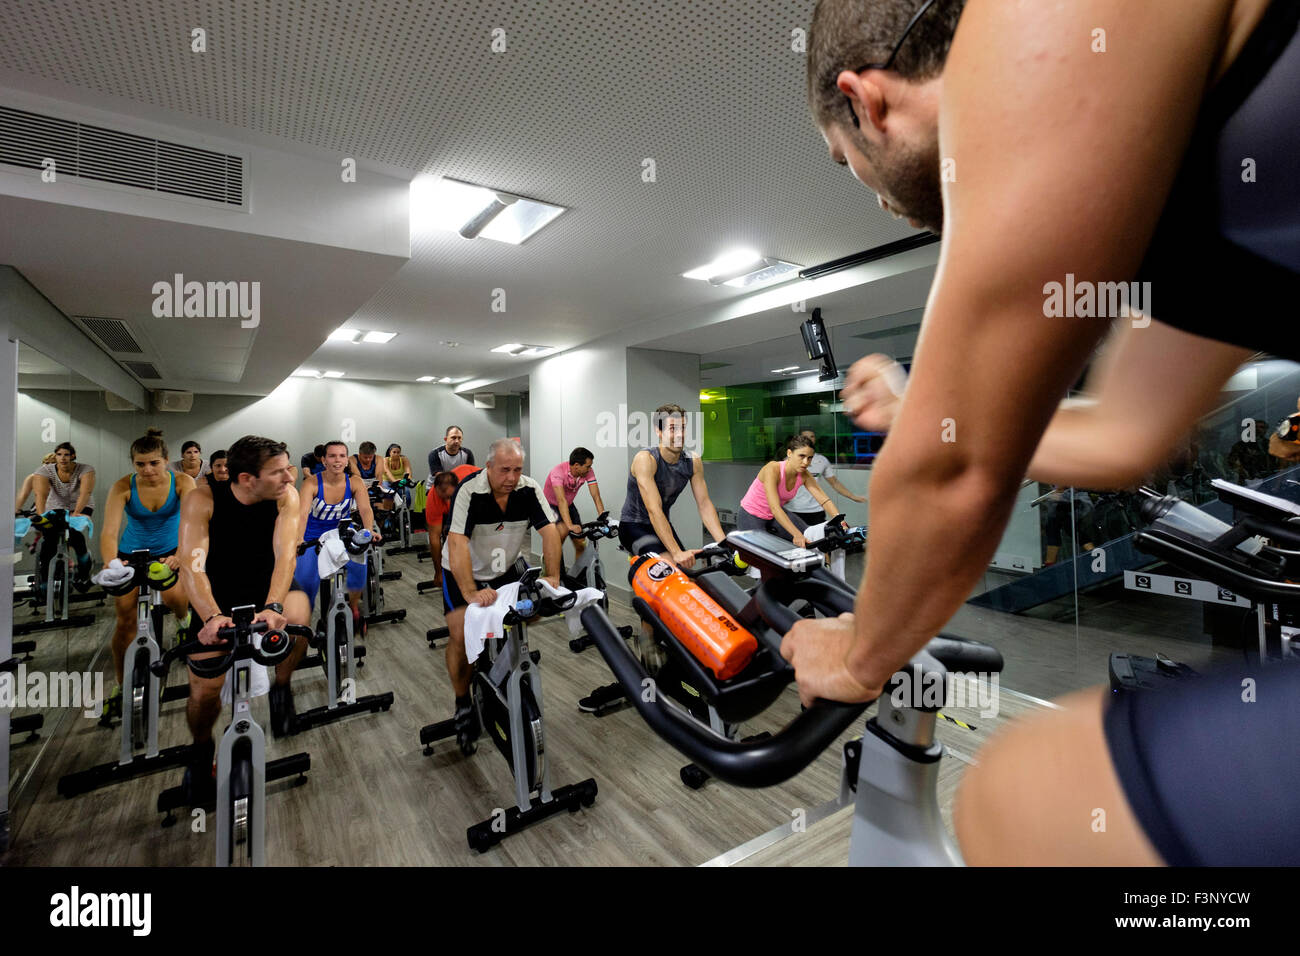 Fitness instructor encourages people riding stationary bicycles during a spinning class at the gym - Stock Image